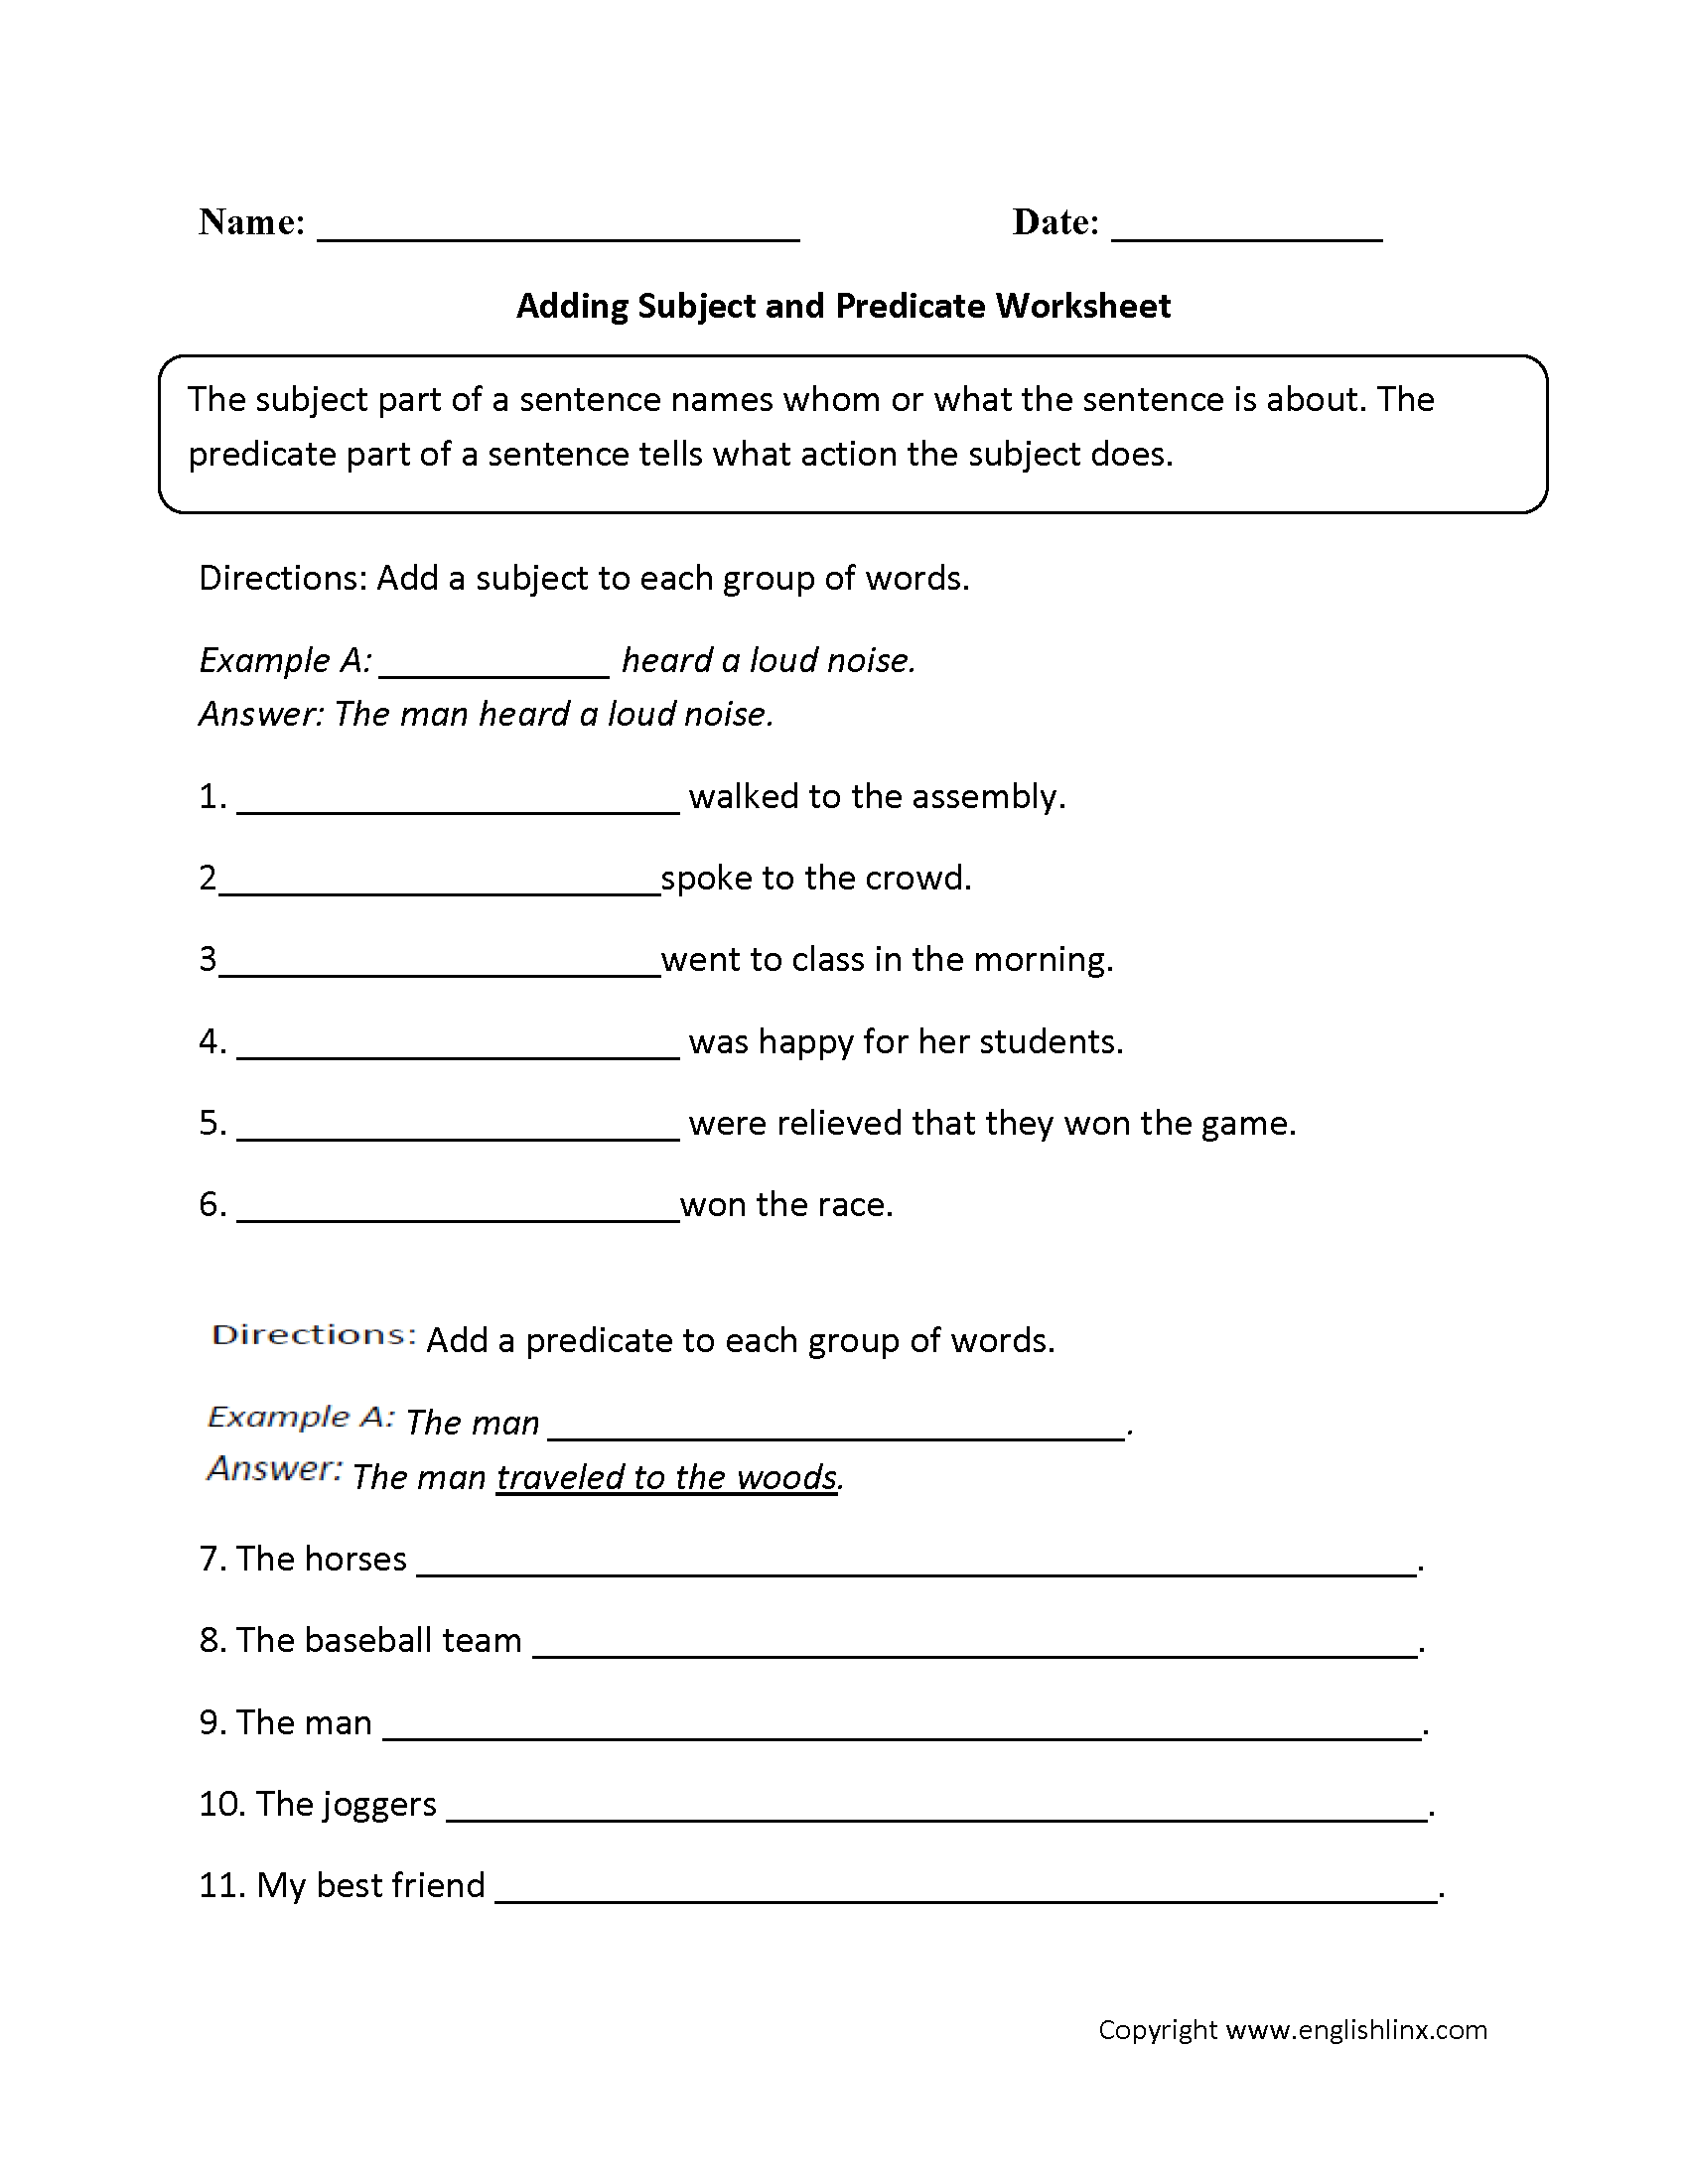 Worksheets 7th Grade Grammar Worksheets parts of a sentence worksheets subject and predicate adding predicateworksheet